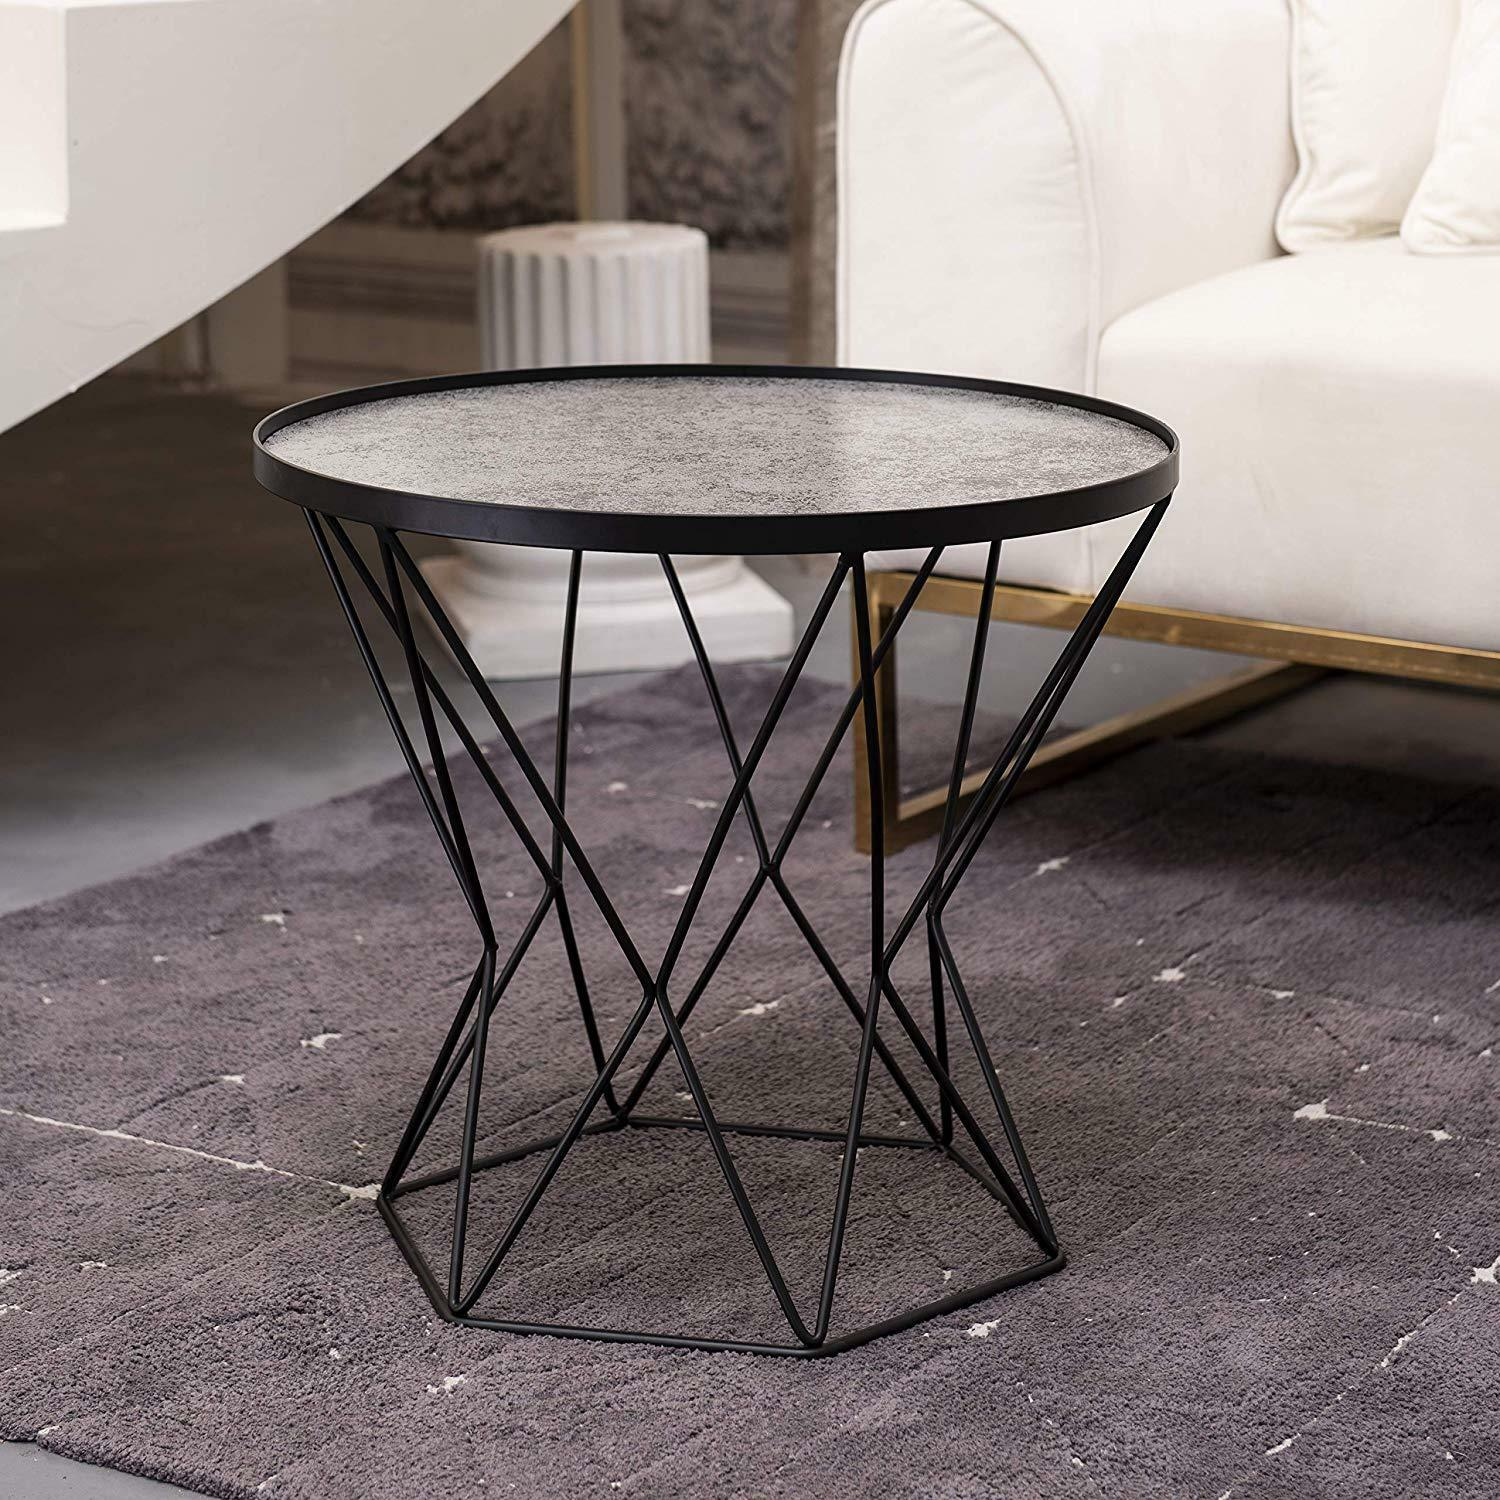 Round End Table Modern Glass Top w/ Metal Frame Coffee Side